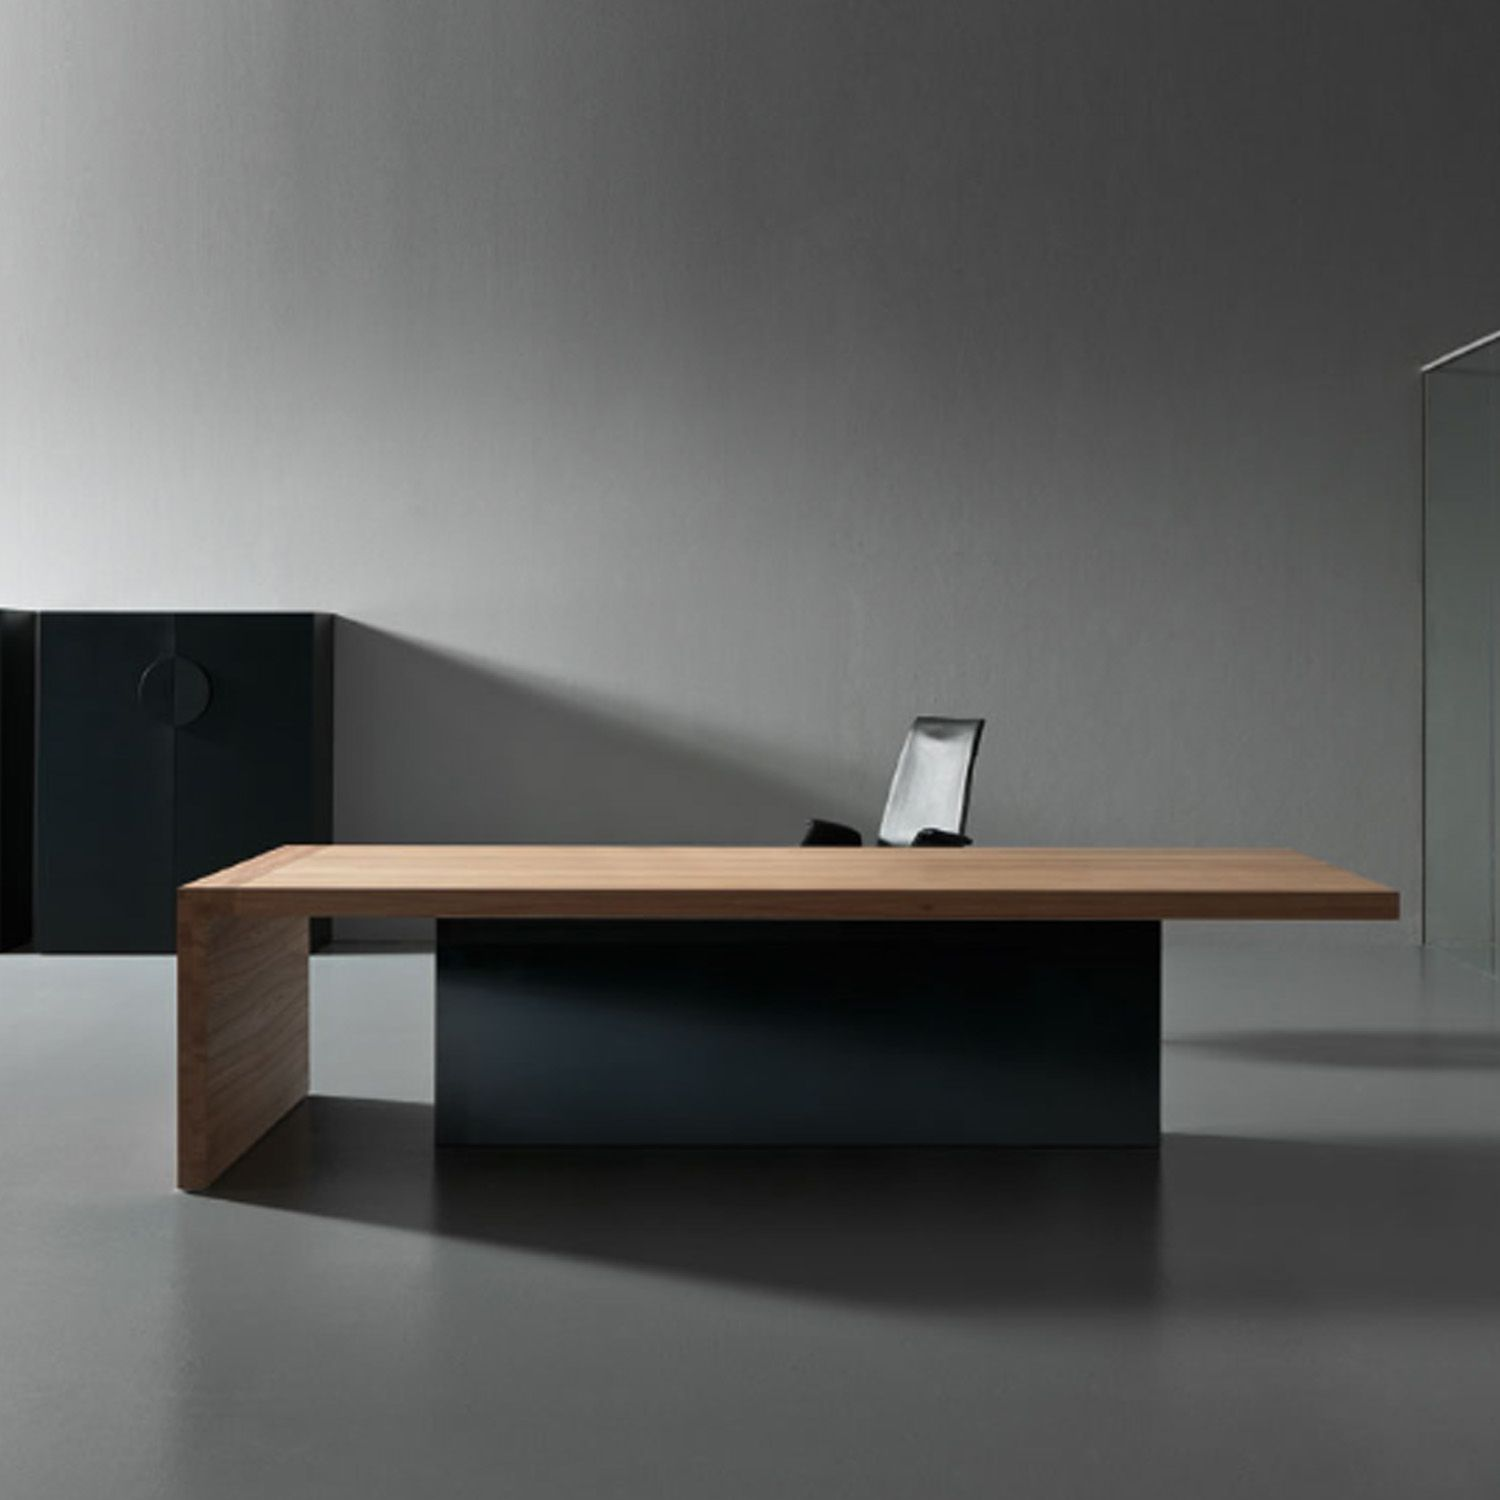 Kyo olmo executive office desk highlights the materiality Characteristics of modern office